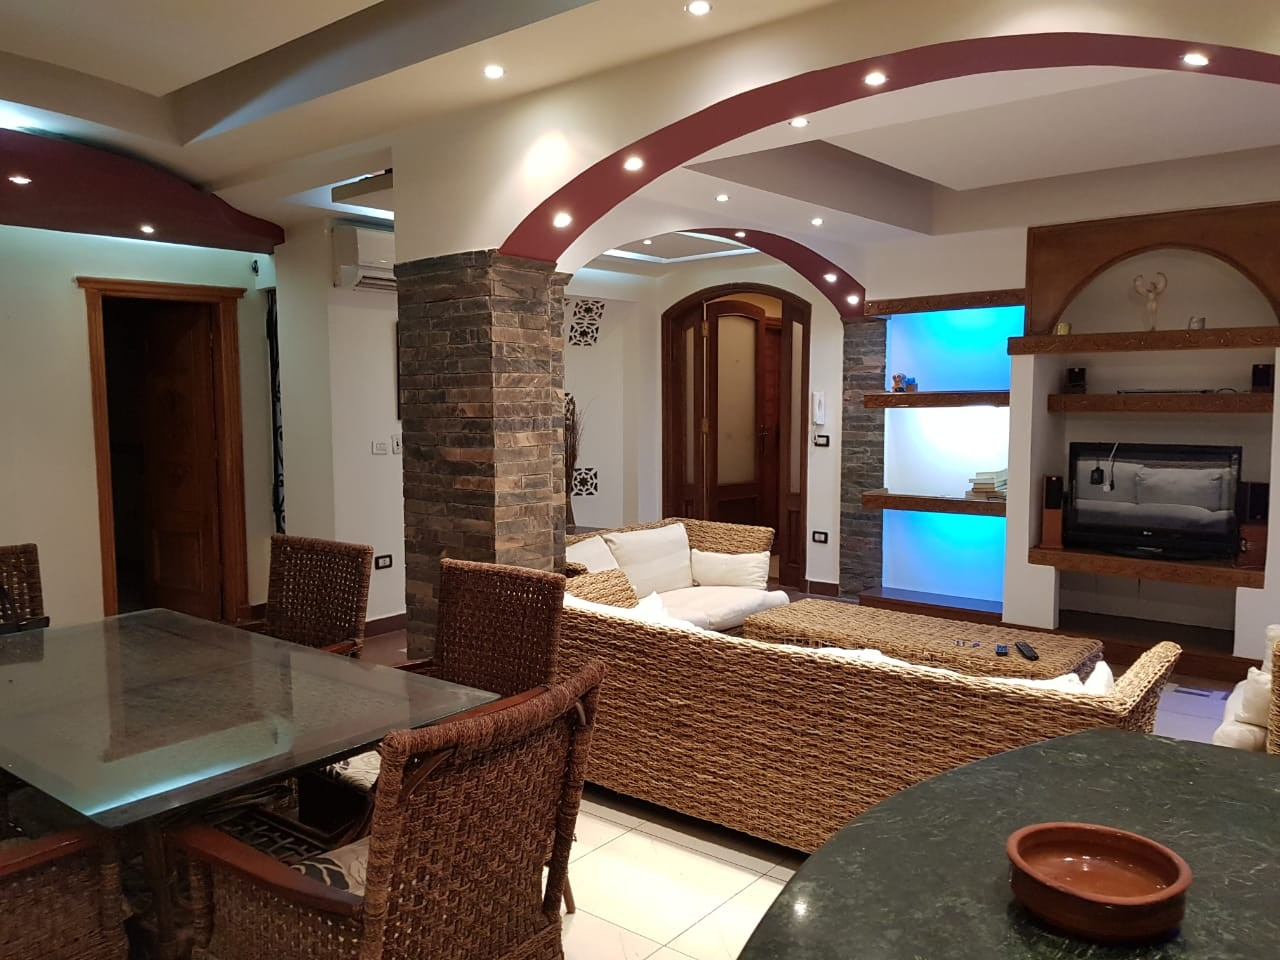 Dazzling Furnished Apartment For Rent In Located Old Maadi - 4906 Featured Image